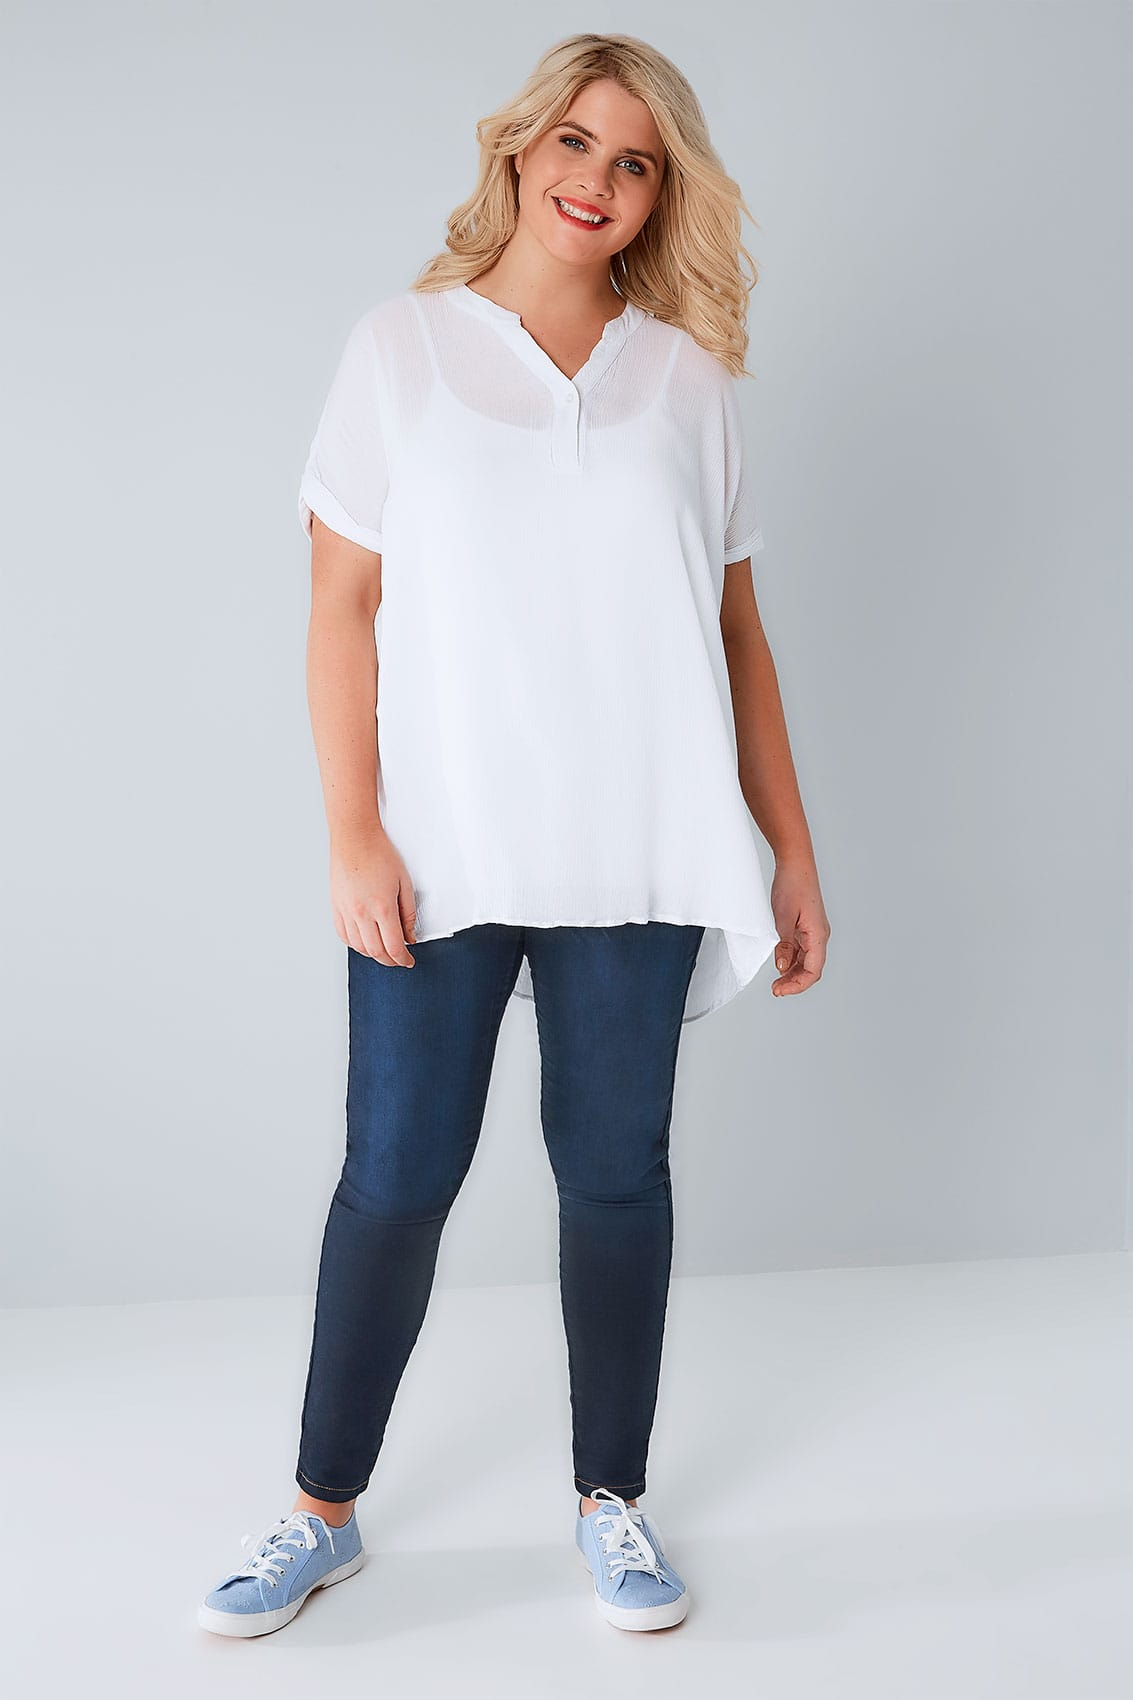 White Oversized Crinkled Shirt With Curved Hem Plus Size